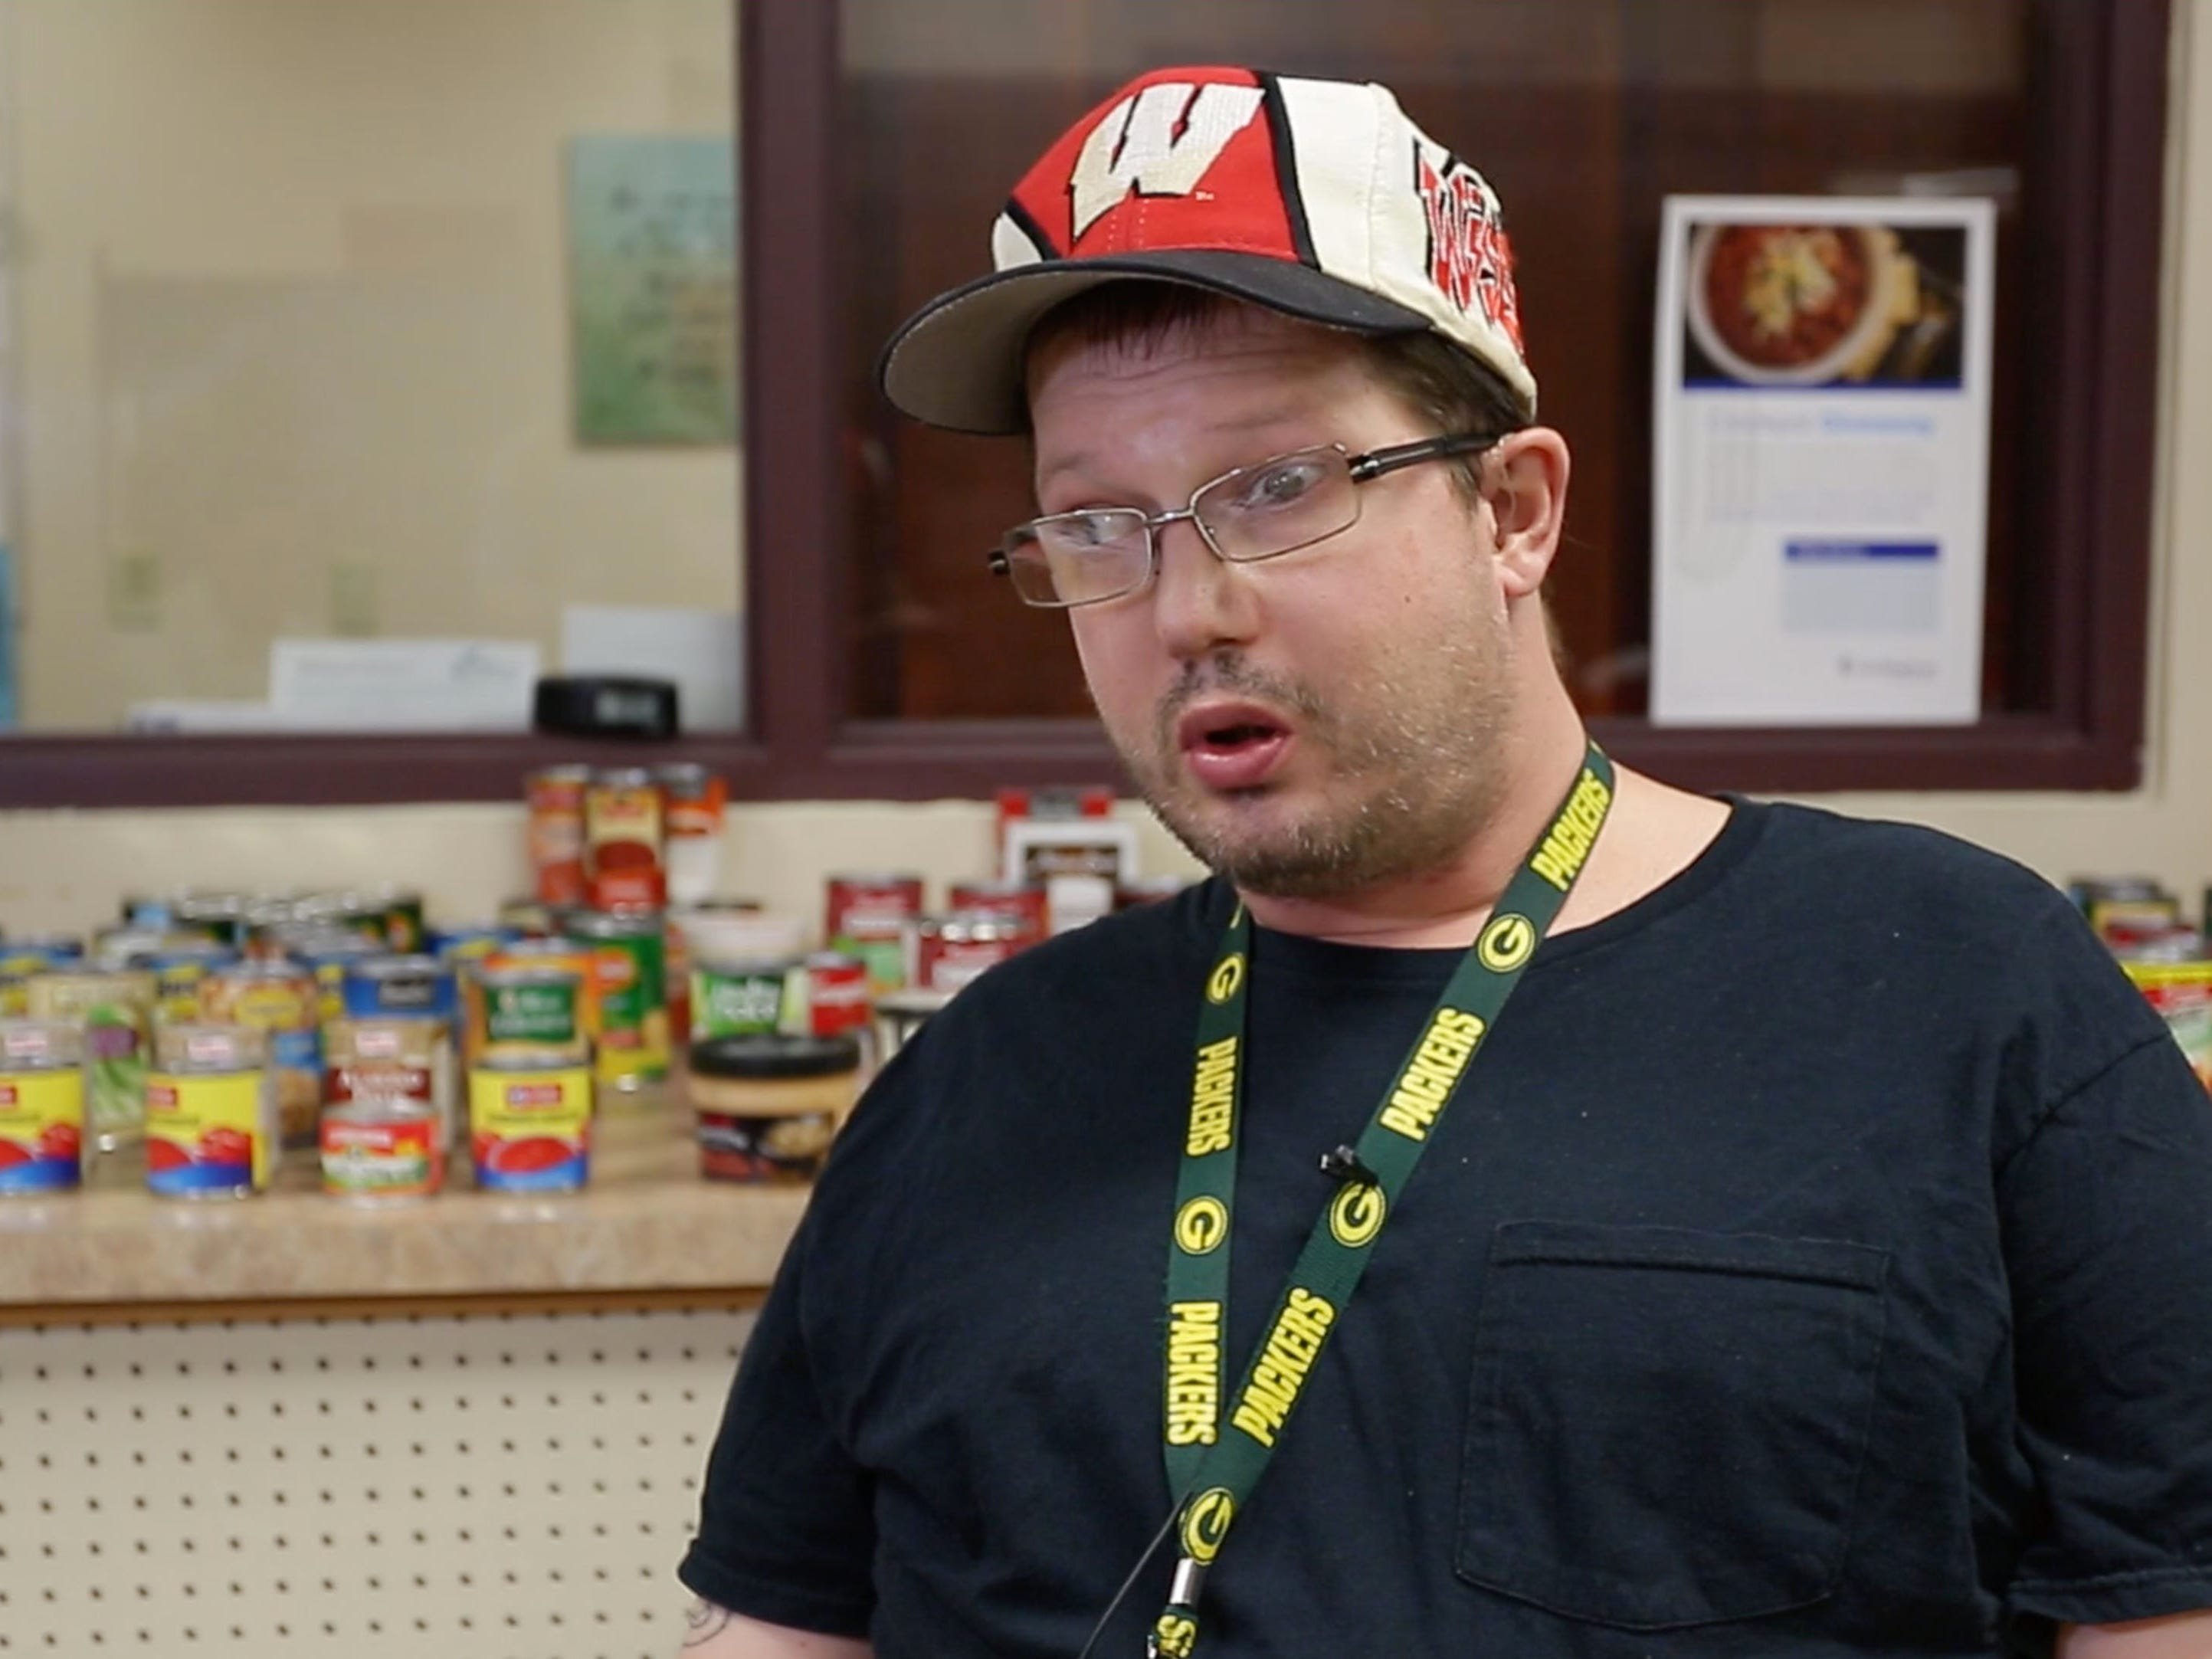 Sheboygan Salvation Army food pantry recipient Garrick Dortman, of Sheboygan, Wis., speaks to the media about how the food pantry makes a difference in his life, Thursday, September 20, 2018, in Sheboygan, Wis.  Dortman, who is on a fixed income says the pantry helps him with his food needs each month.